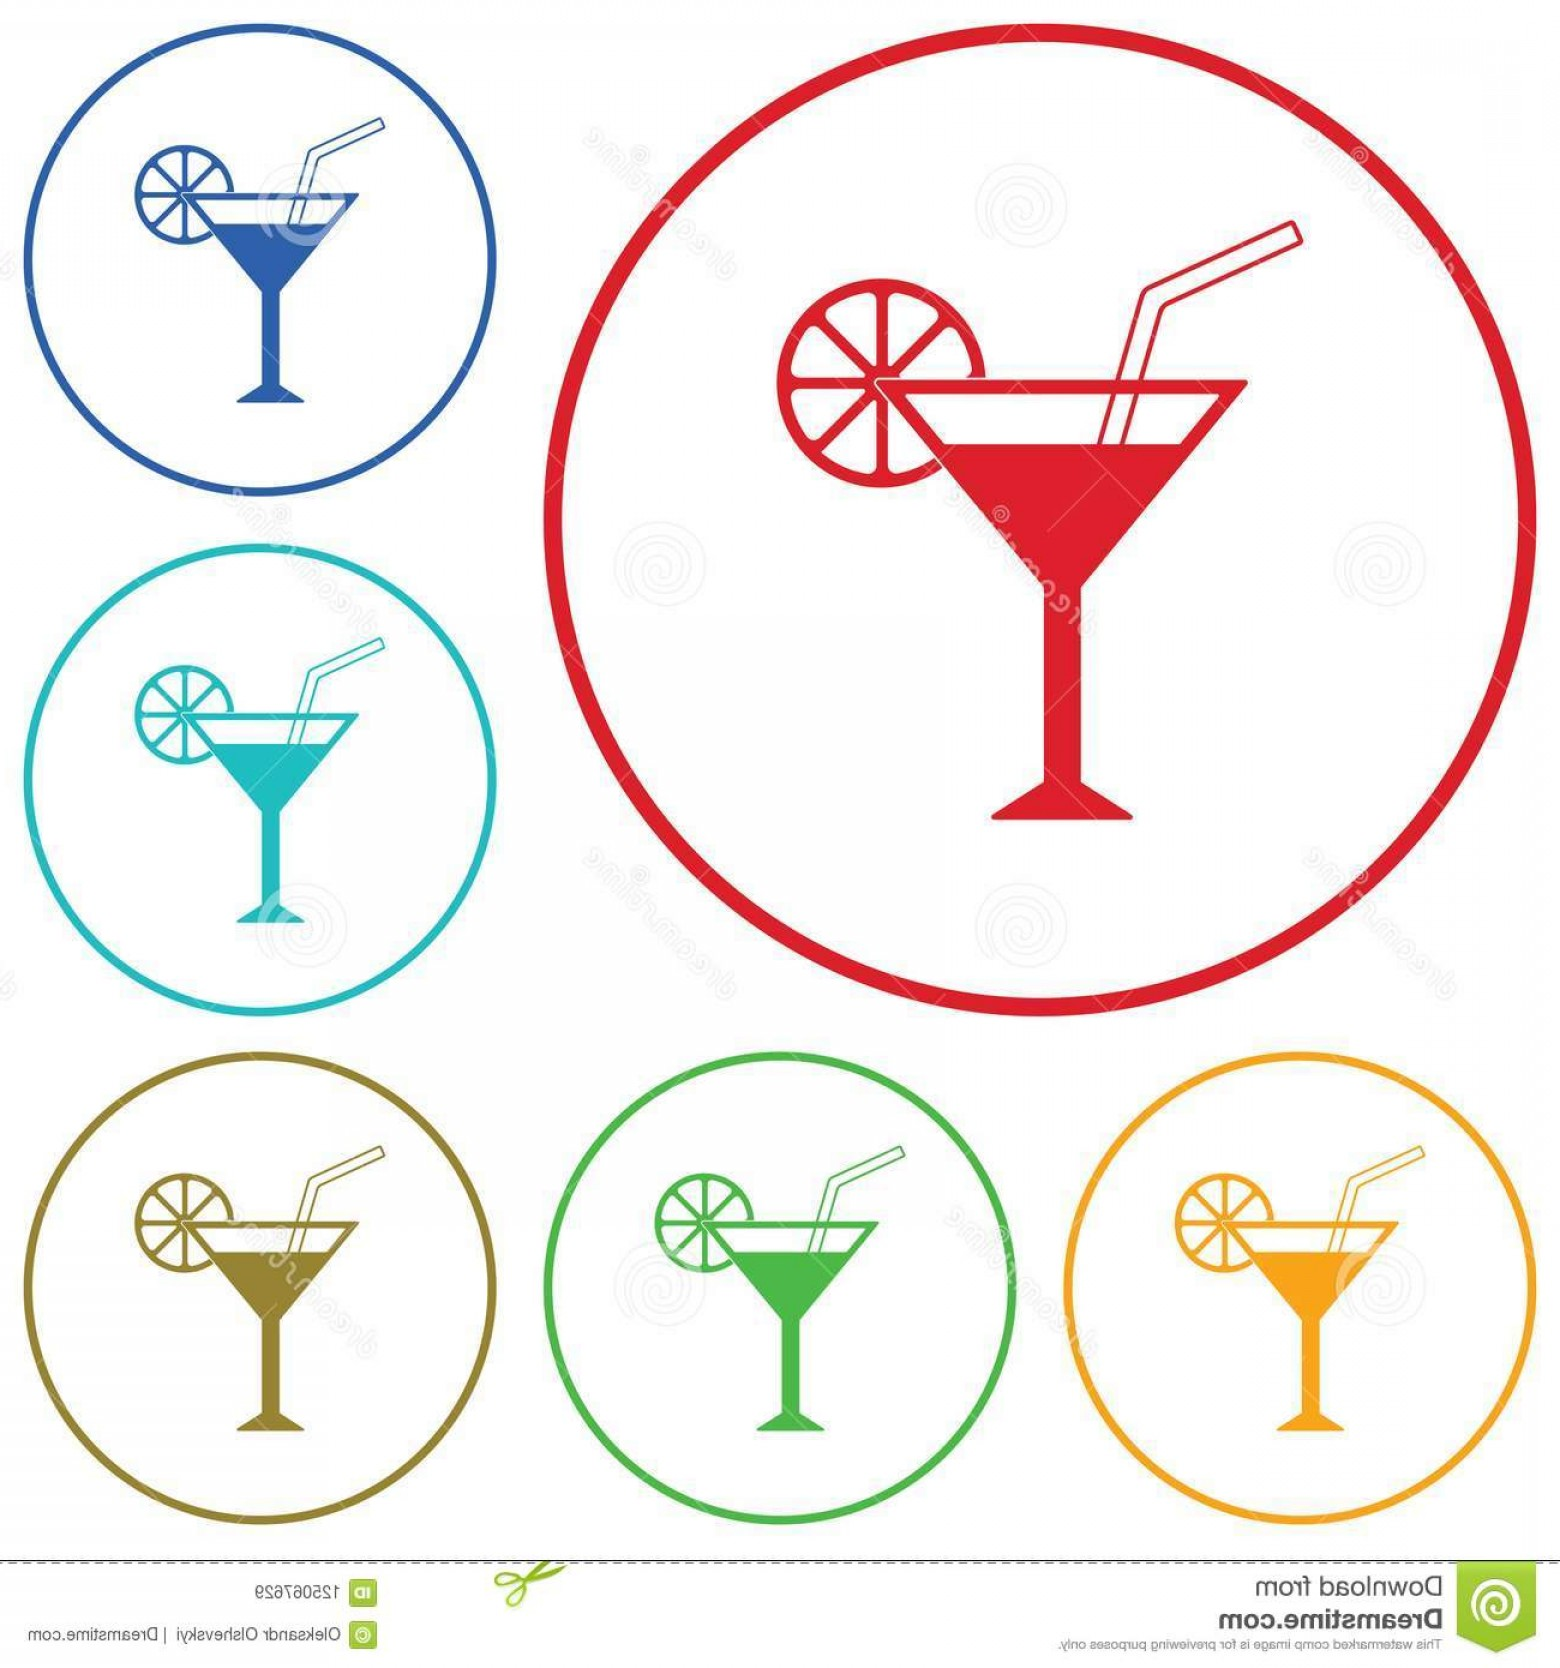 Cocktail Glasses Vector Art Decor: Cocktail Glass Sign Martini Vodka Icon Vector Illustration Cocktail Glass Sign Martini Vodka Icon Image